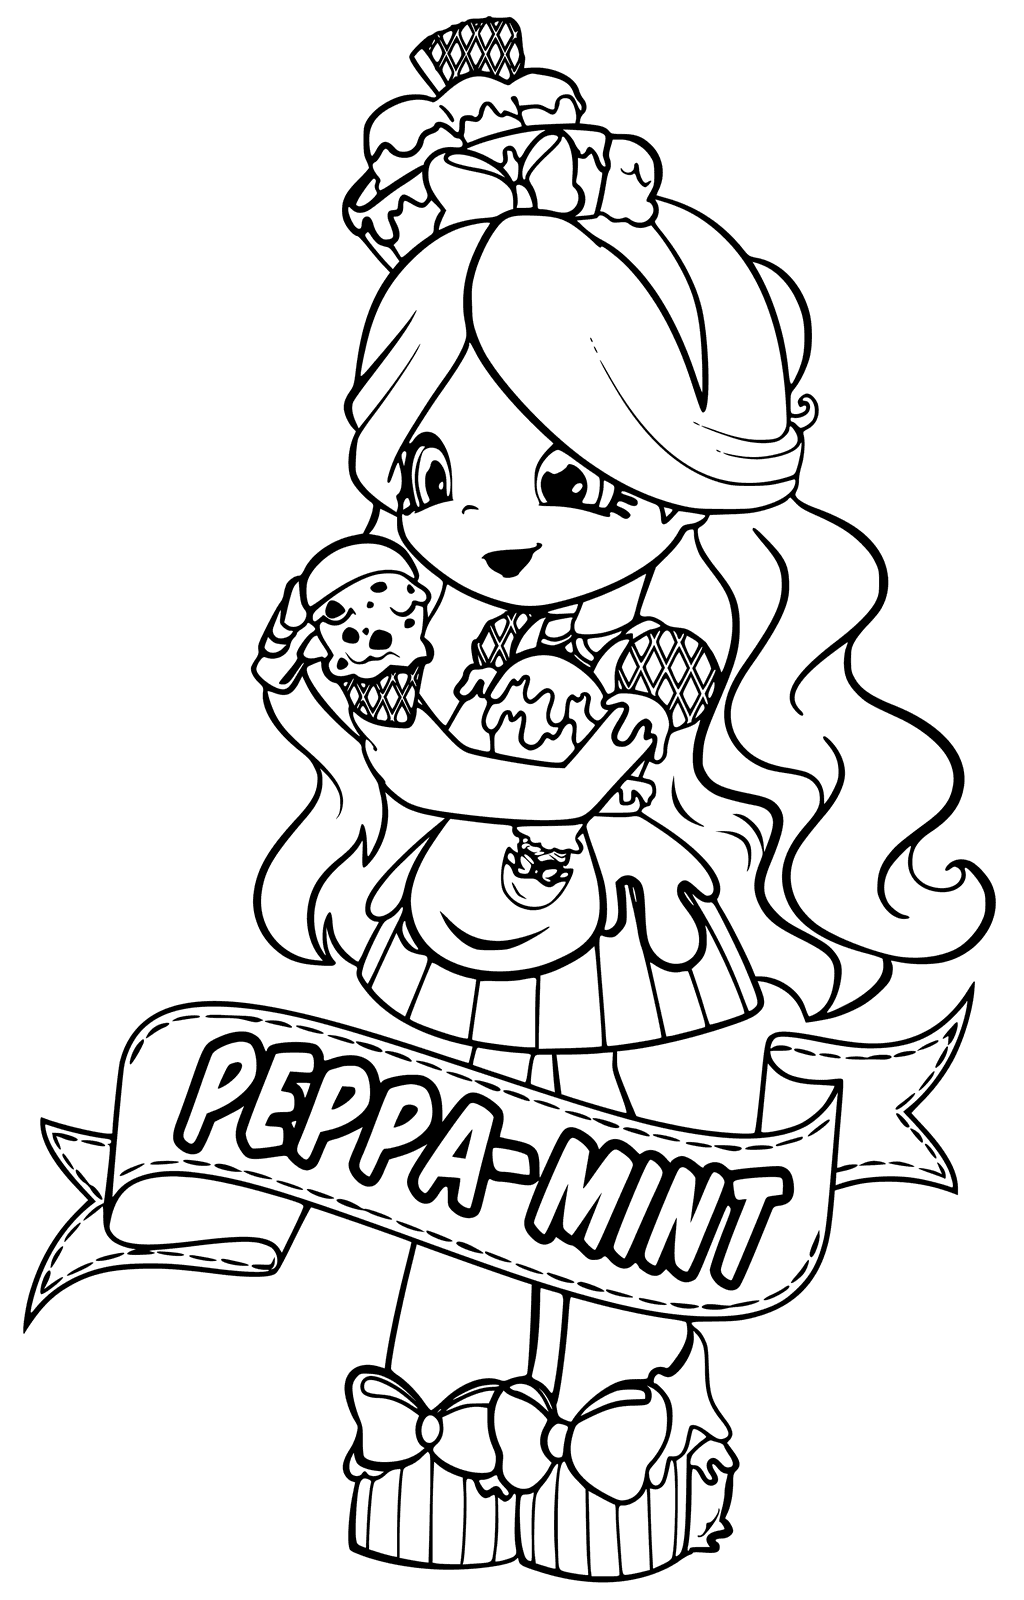 Coloring Rocks Cartoon Coloring Pages Shopkin Coloring Pages Shopkins Colouring Pages